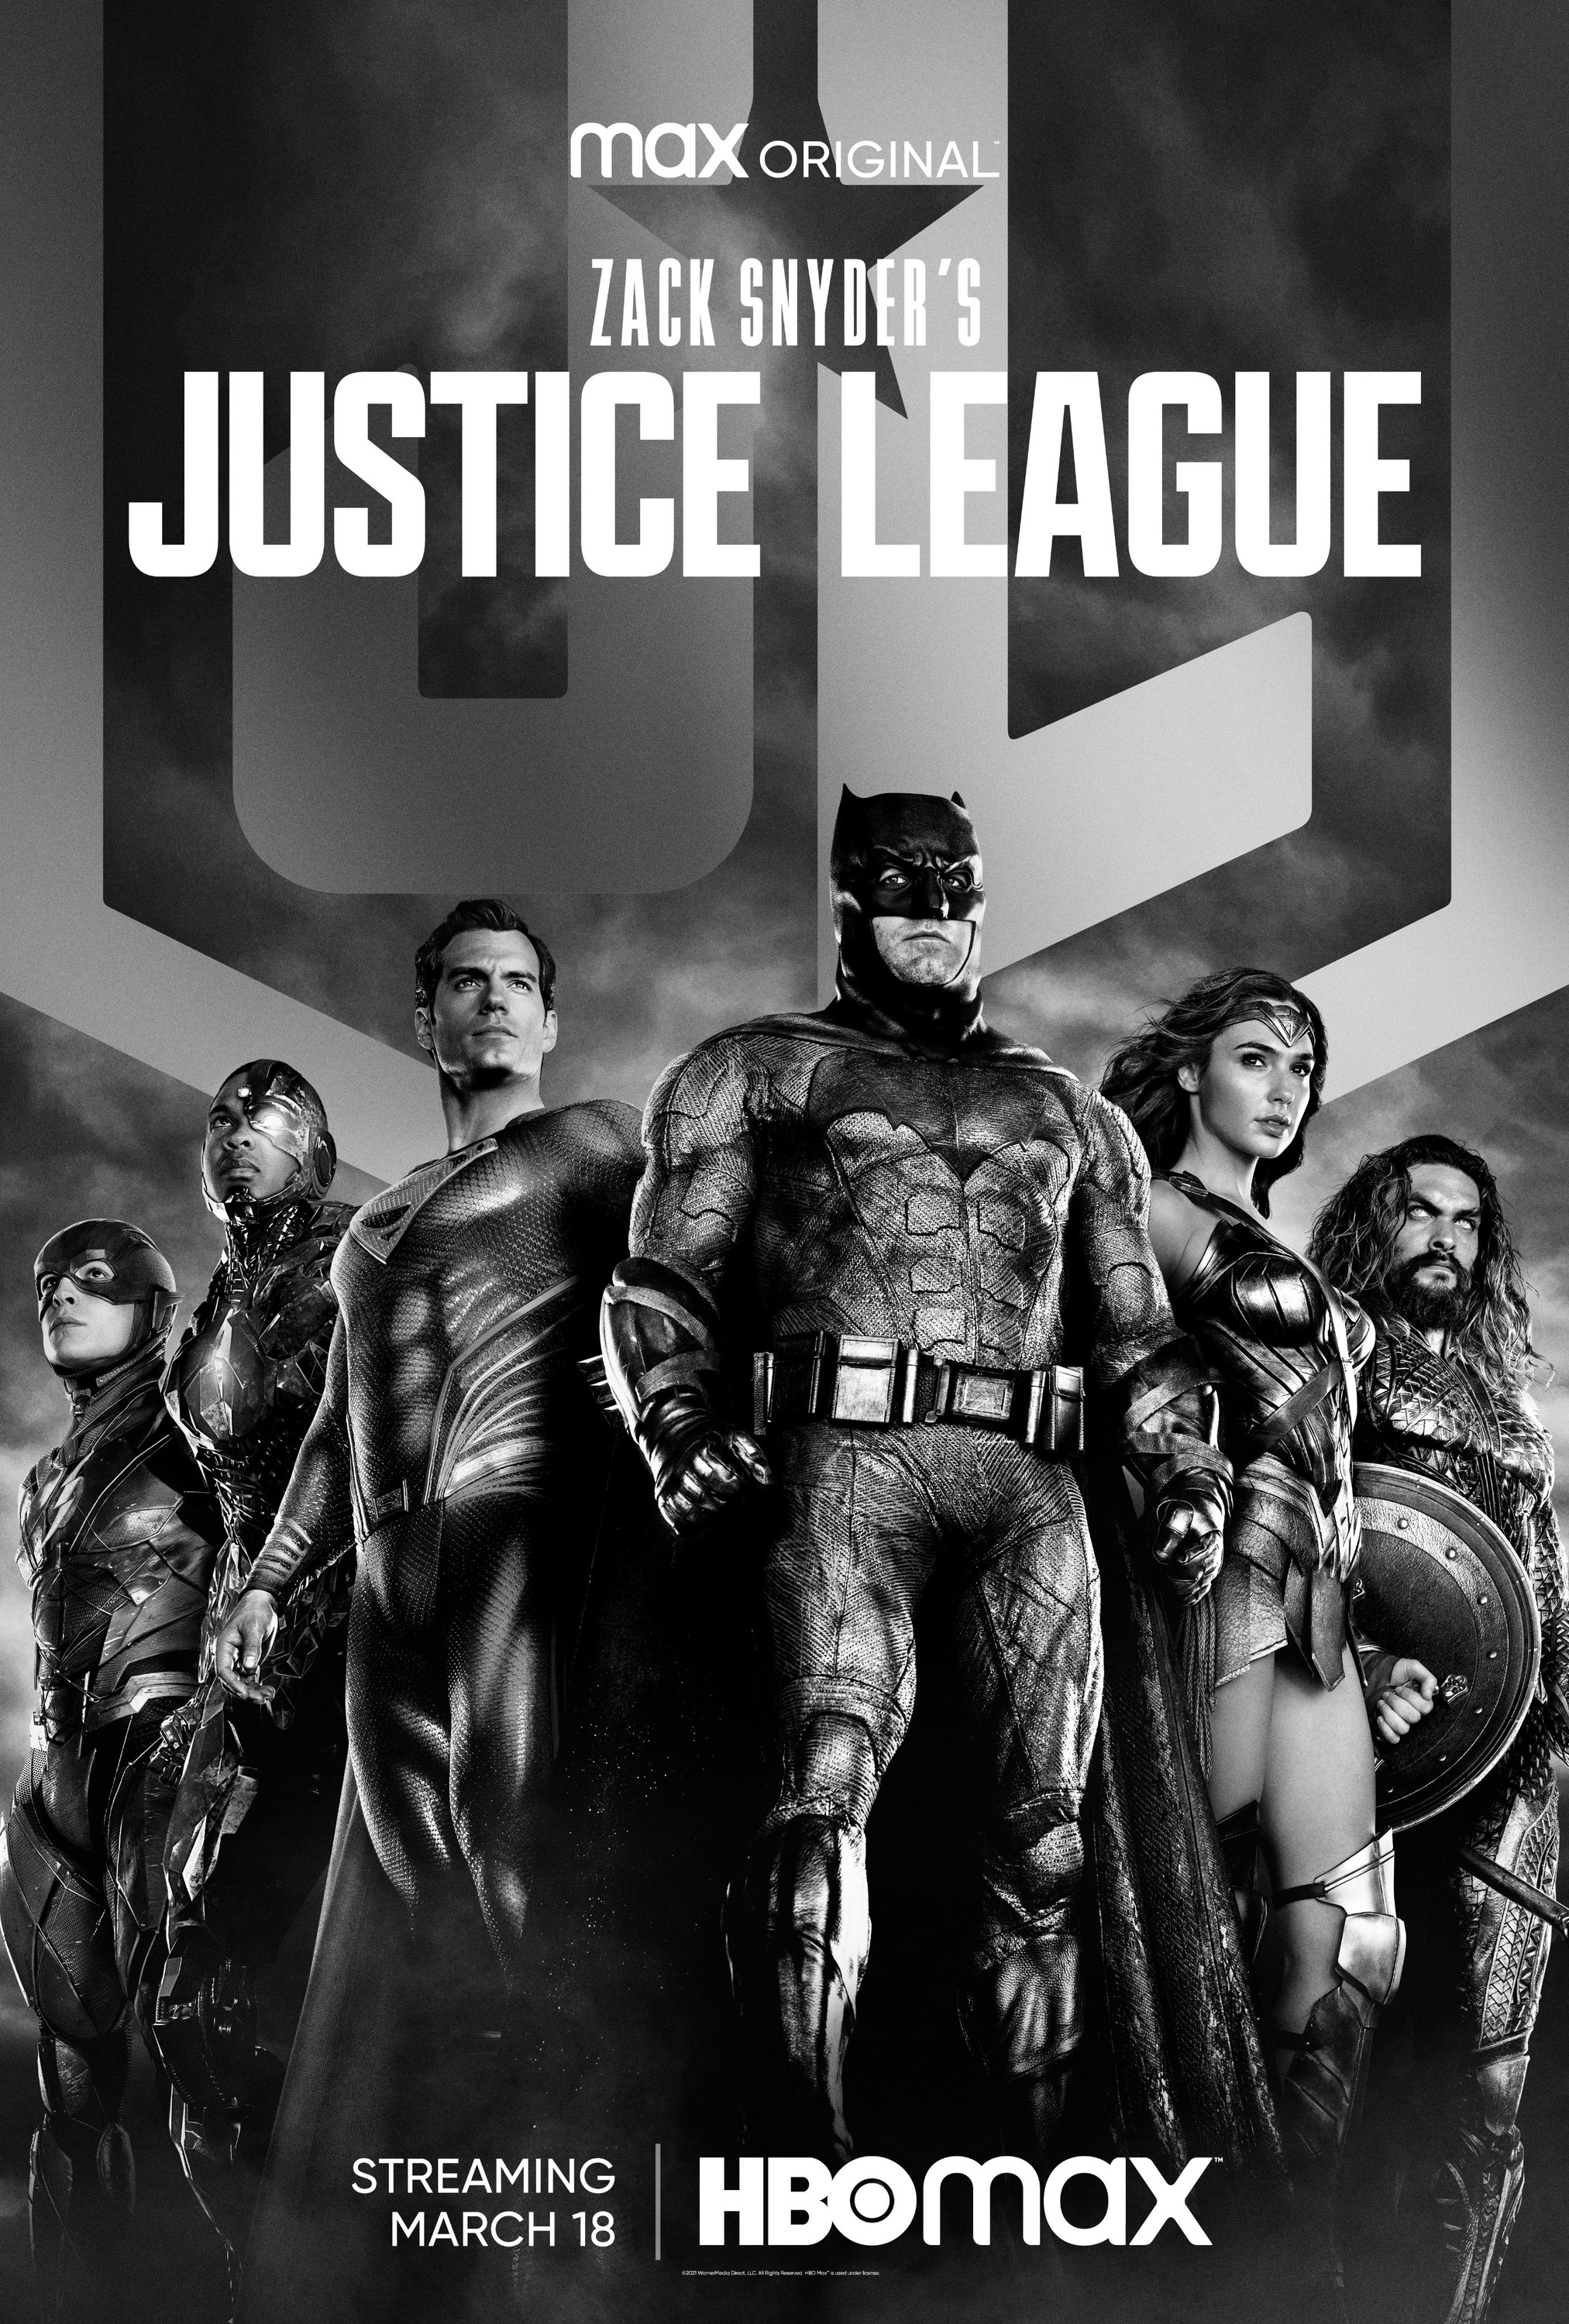 szmk_hbo_justice_league_snydercut_zack_snyder_batman_dc_comics_superman_aquaman_wonder_woman_cyborg_darkseid_13.jpg